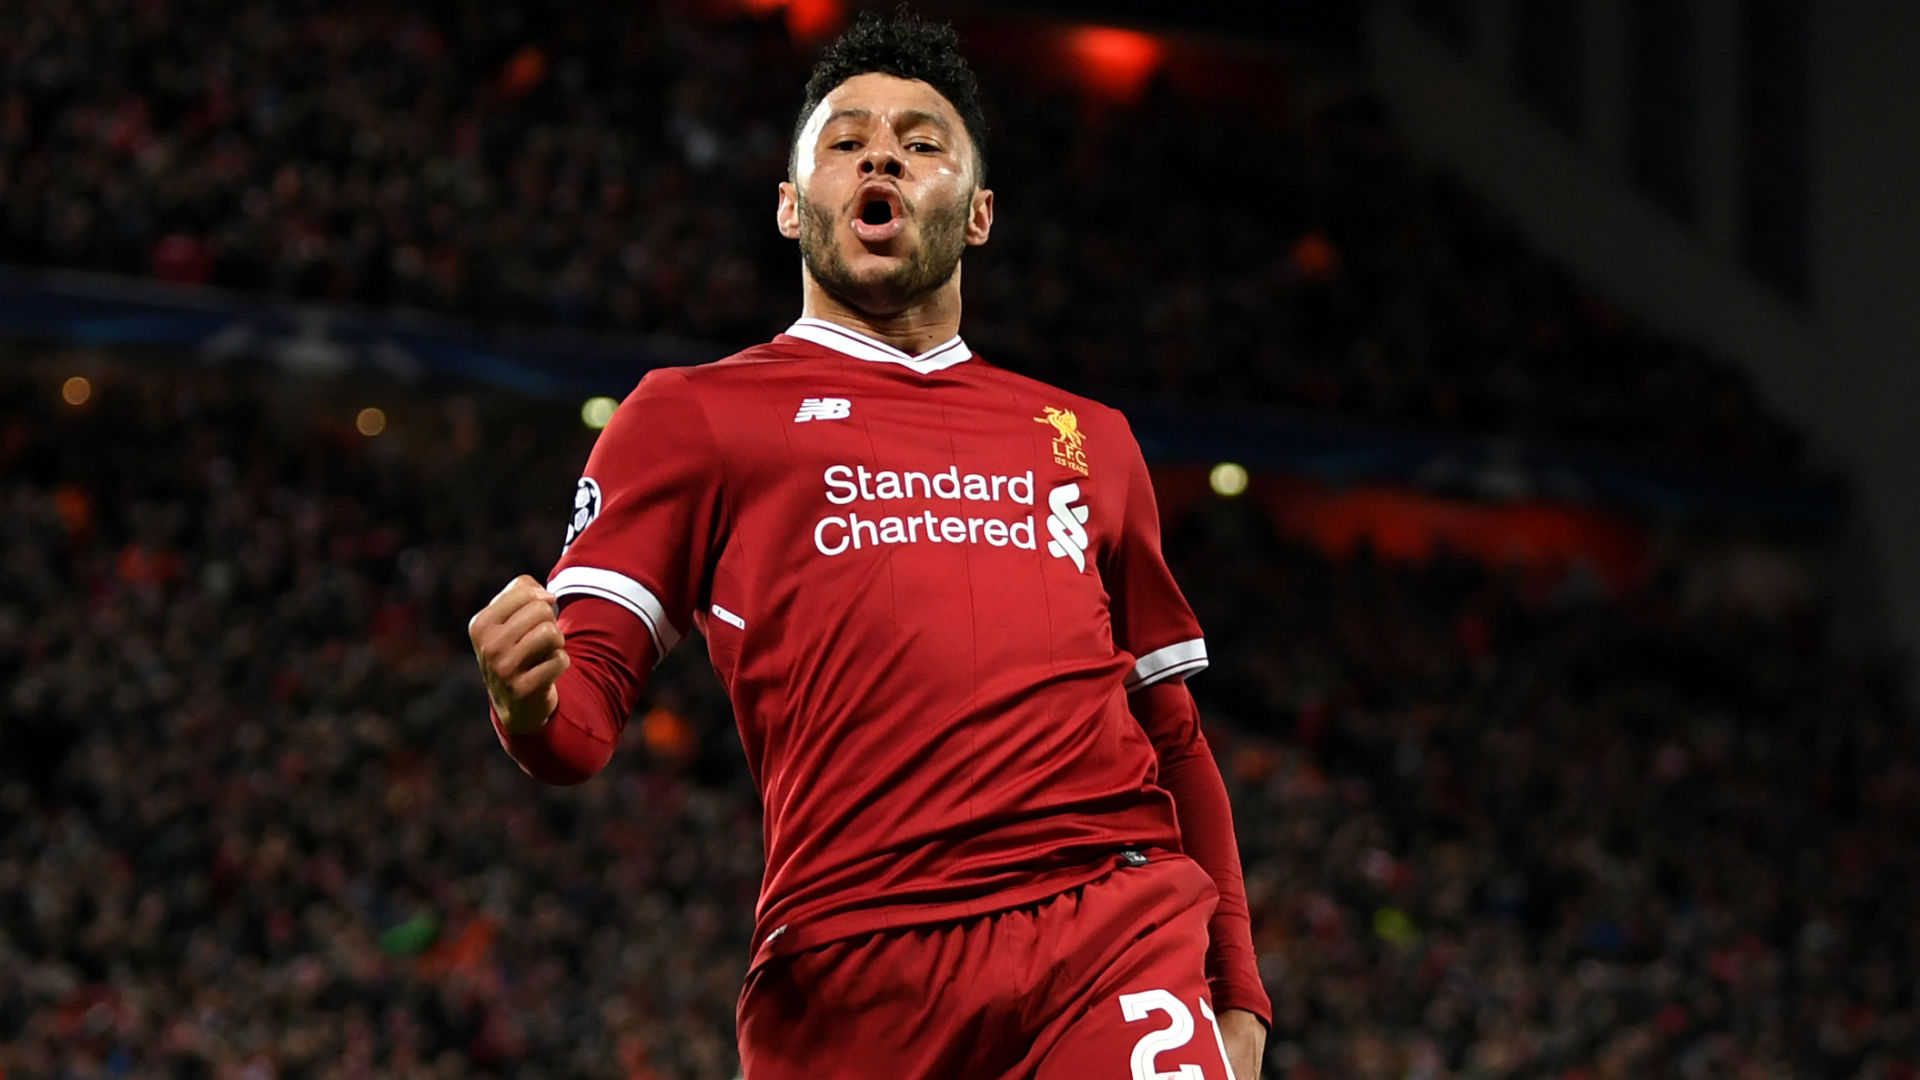 Oxlade-Chamberlain Hits An Absolute Screamer To Send Anfield Into Raptures